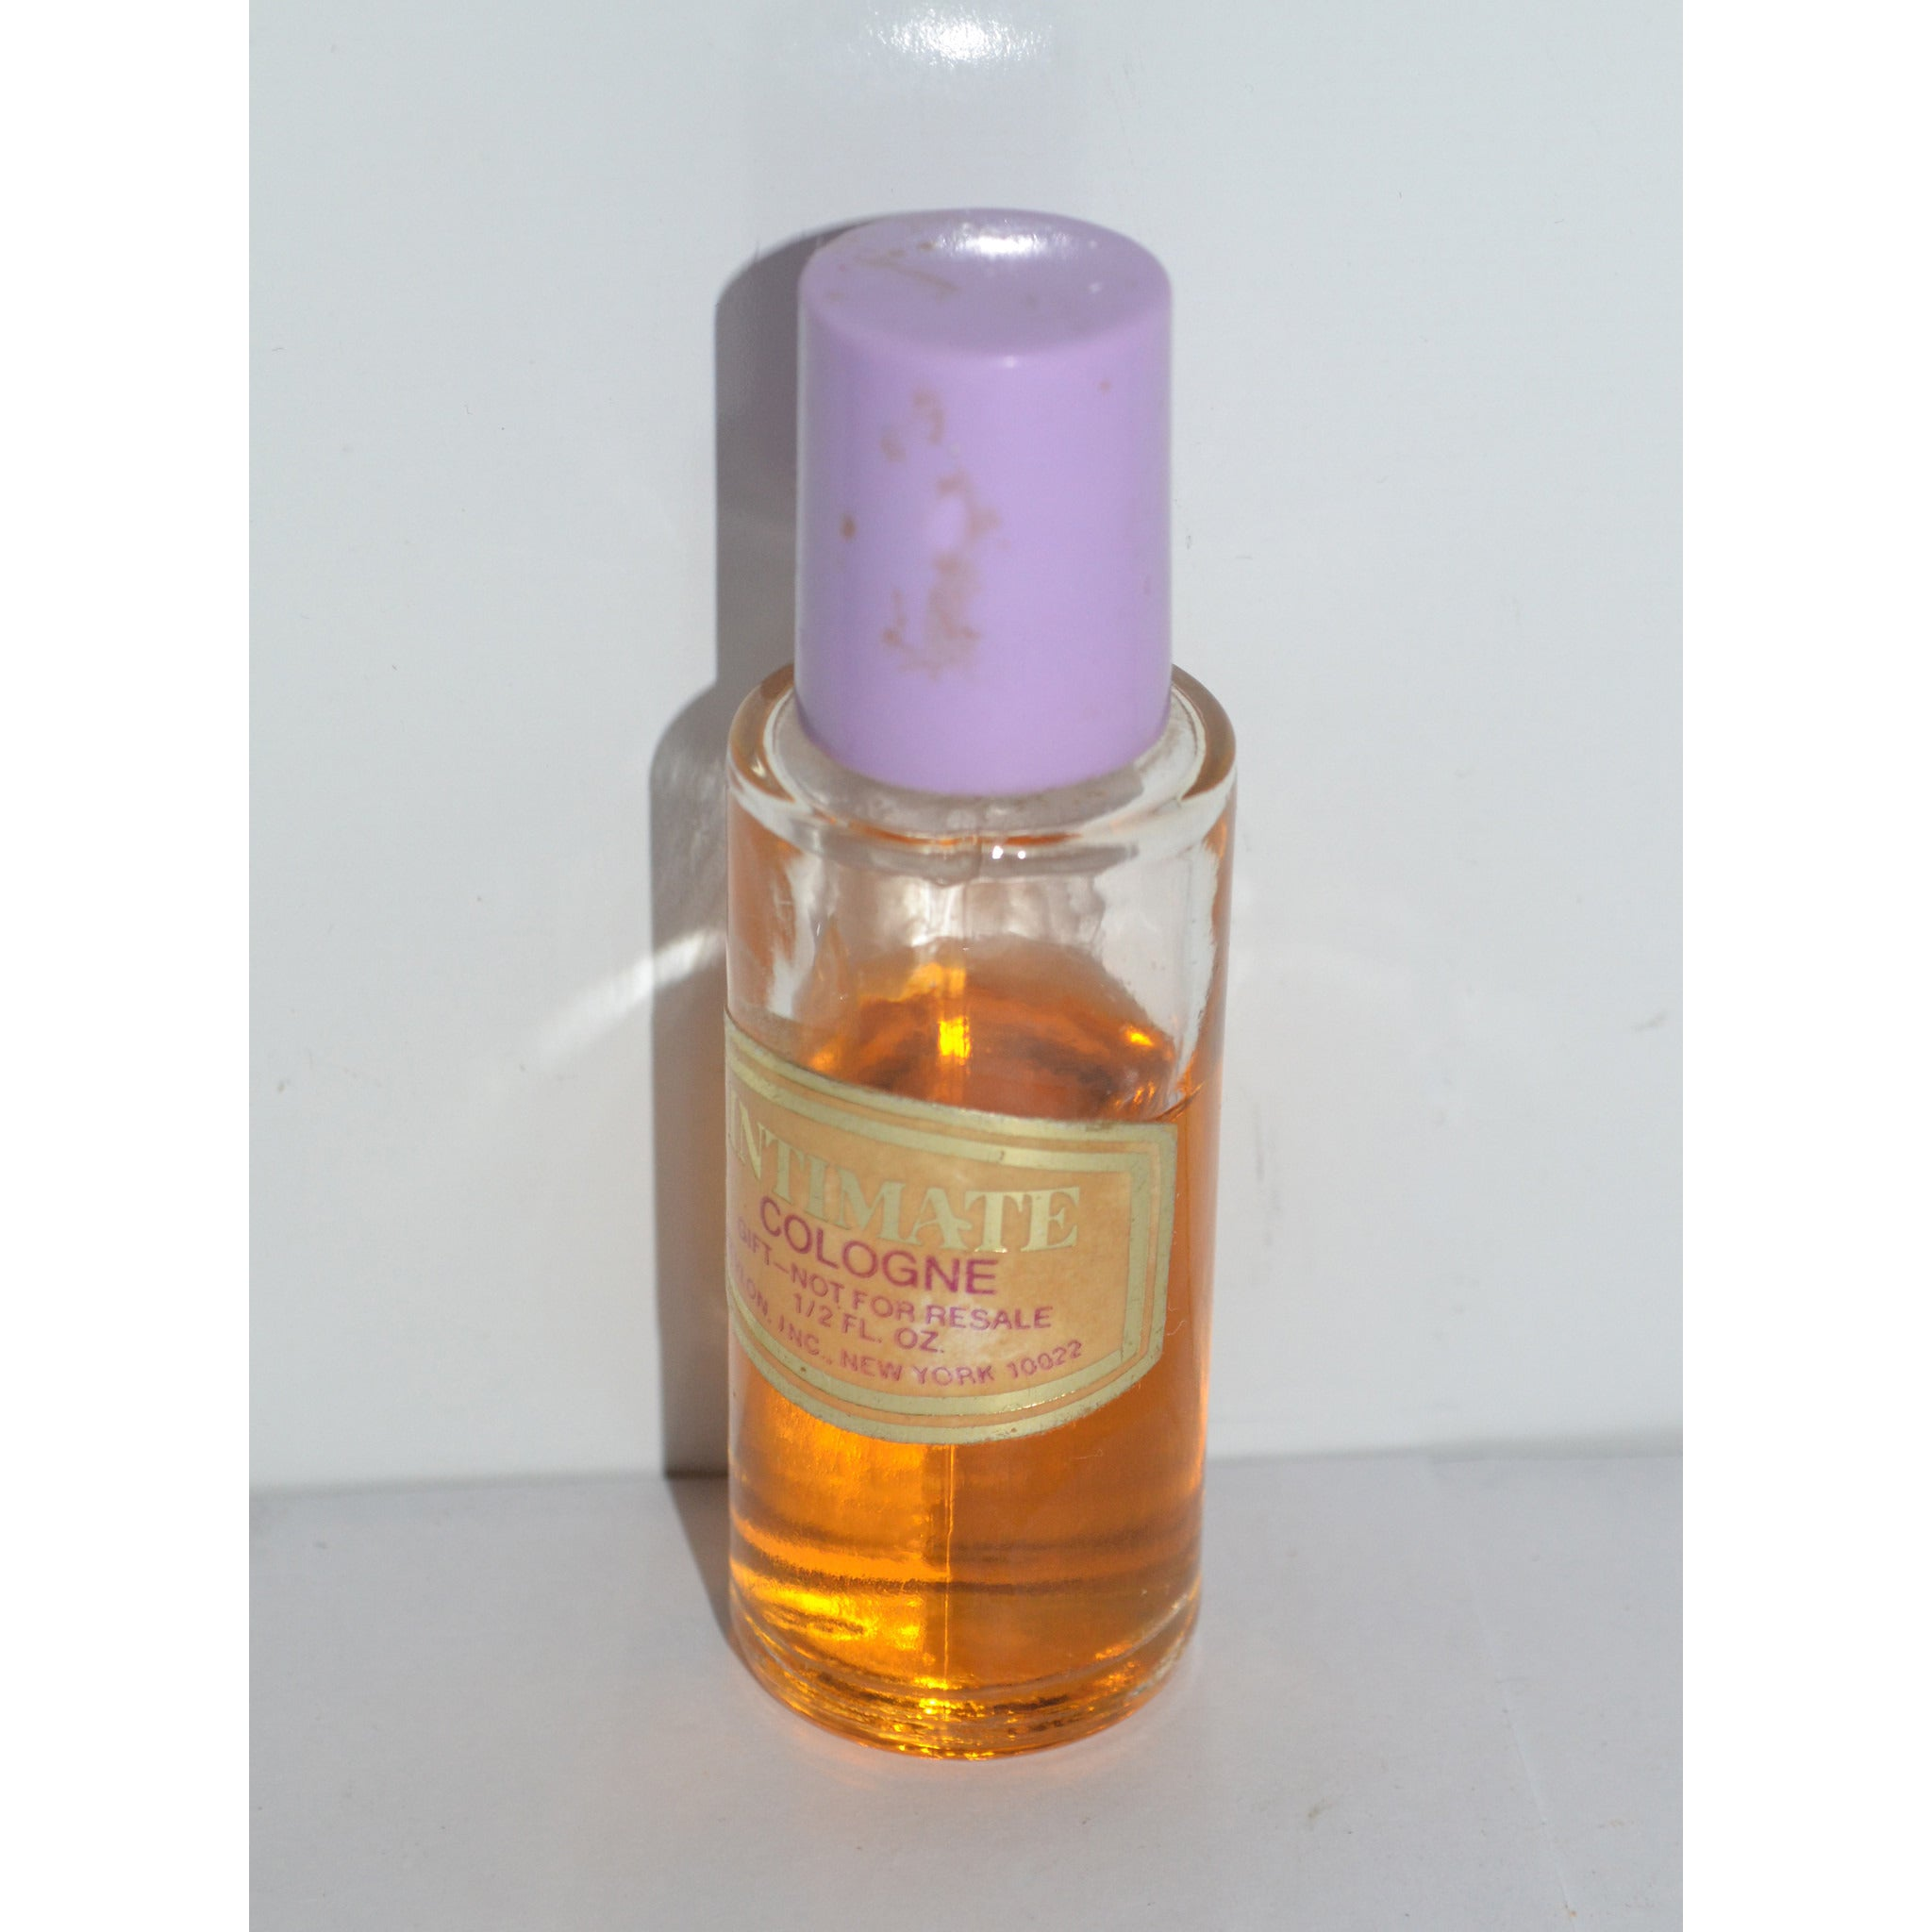 Vintage Intimate Cologne By Revlon